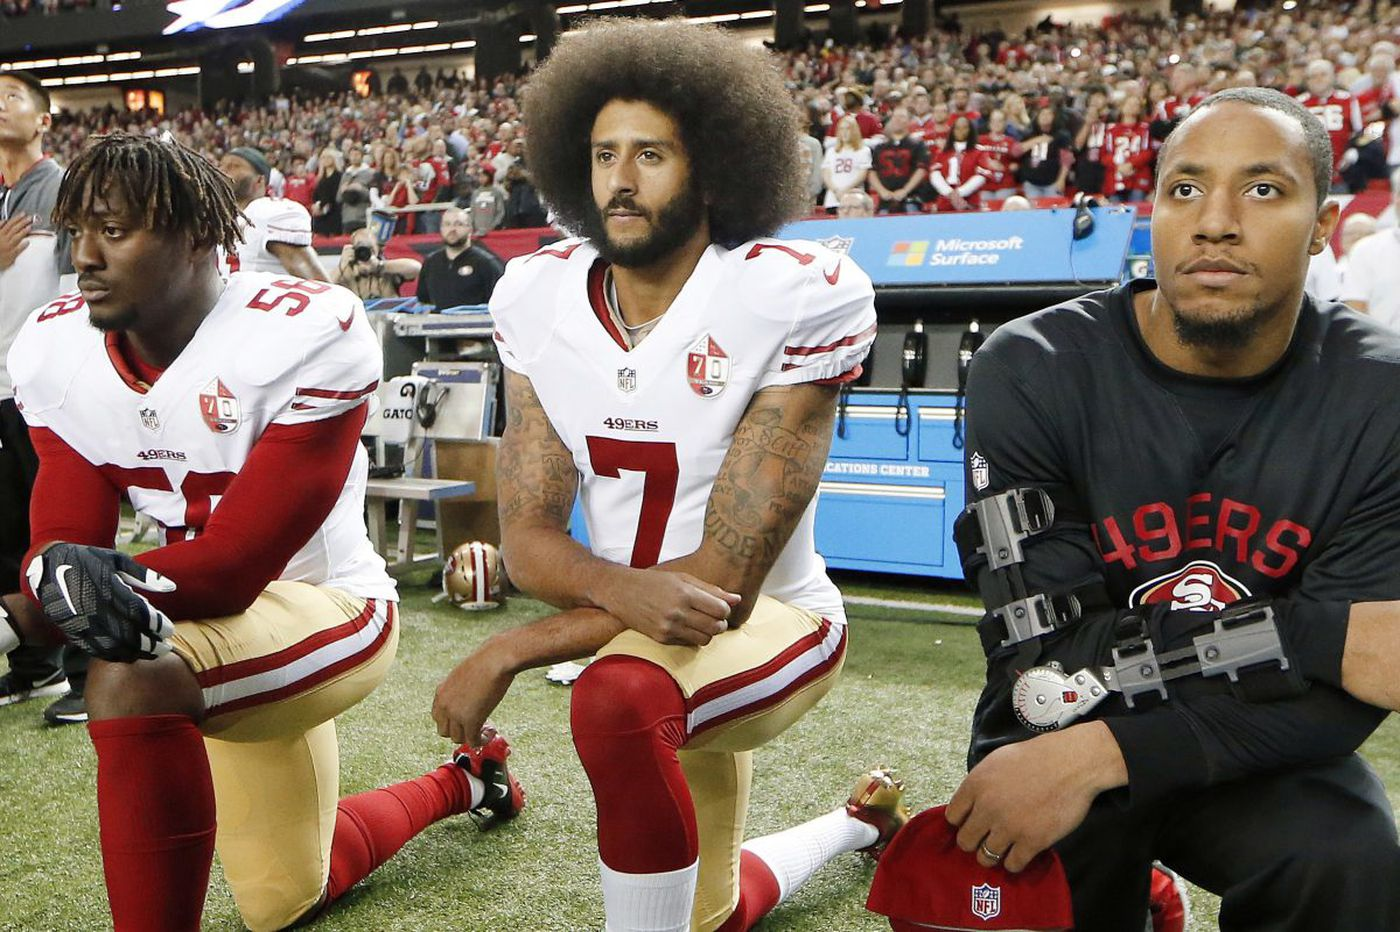 Colin Kaepernick's decision to take a knee will be his lasting legacy   Bob Brookover